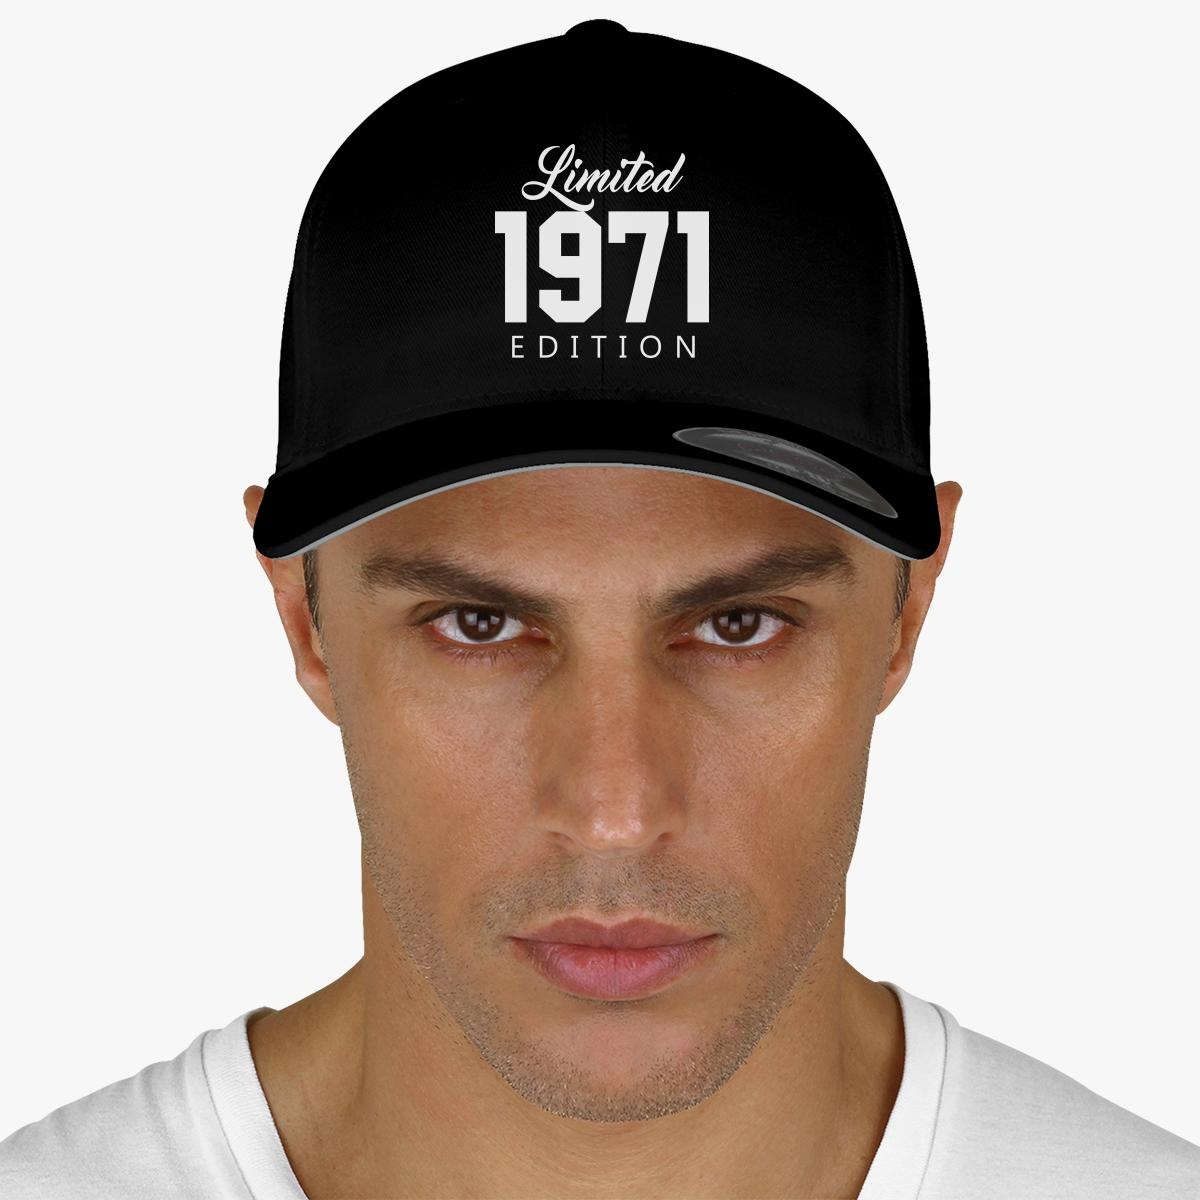 1971 Limited Edition Birthday Embroidered Baseball Cap